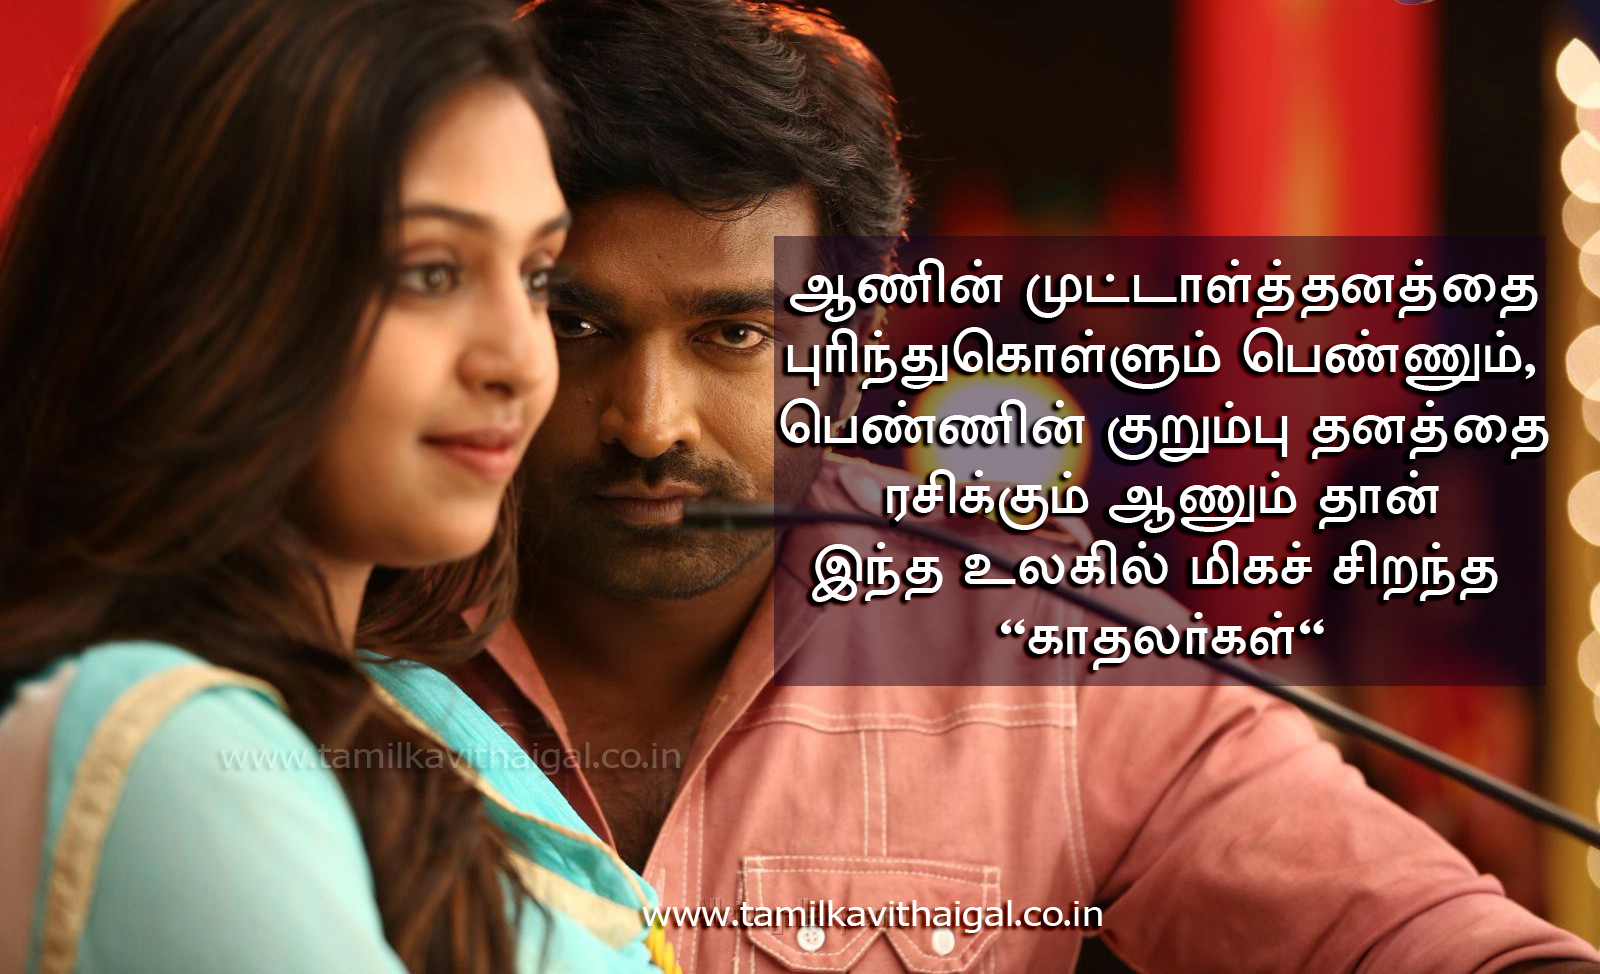 Sad images of love with quotes in tamil